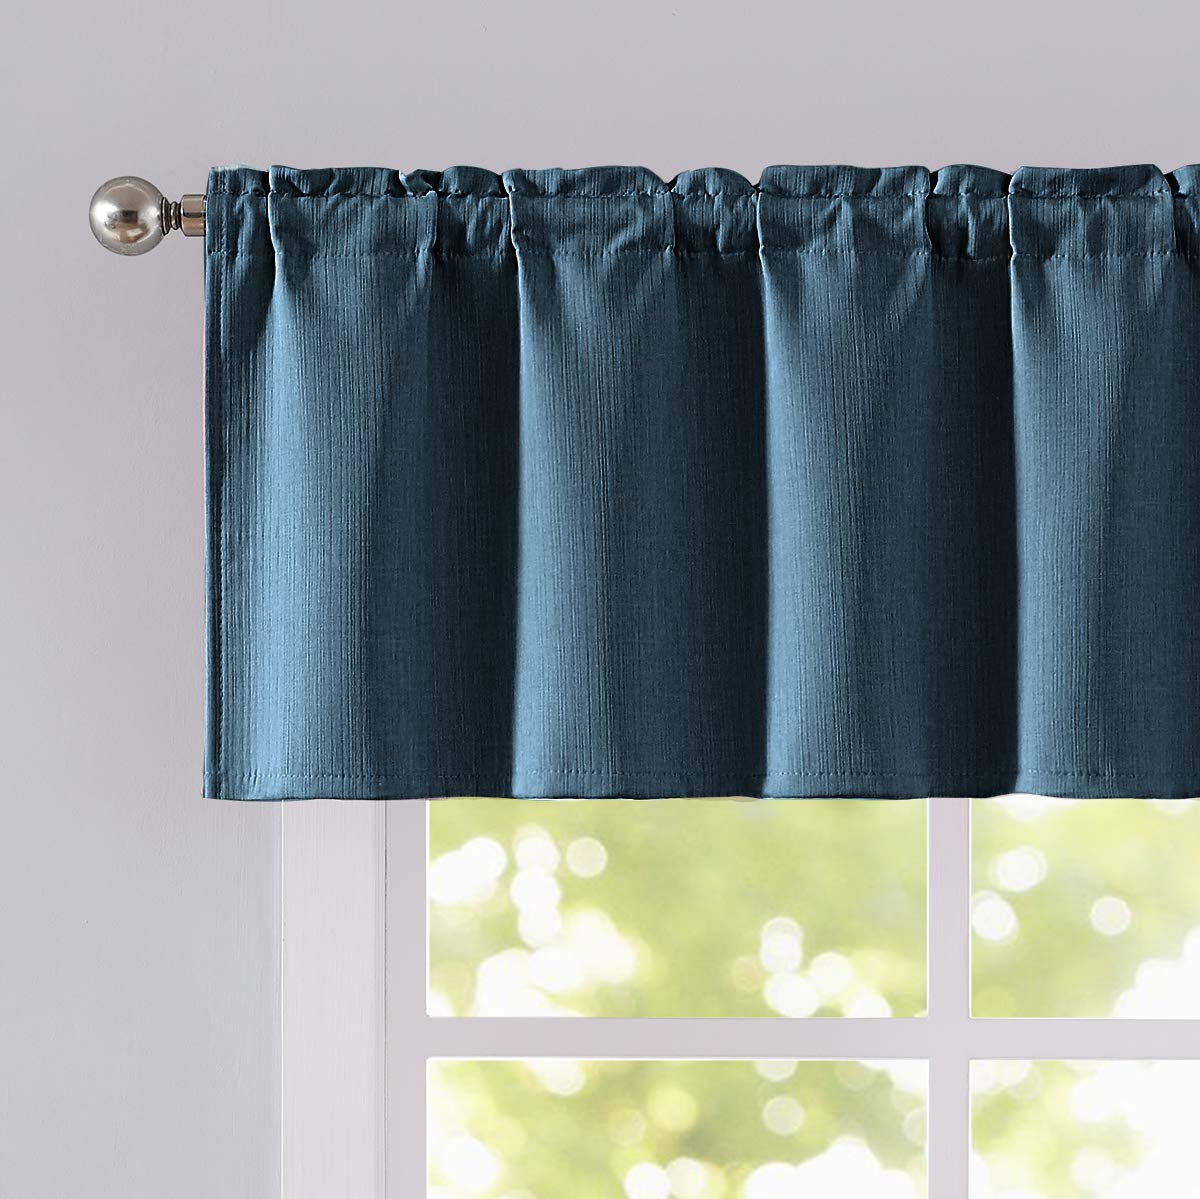 "Modern Subtle Texture Solid White Kitchen Curtain Parts With Grommets Tier And Valance Options Pertaining To Fashionable Natwin Blue Valance Window Curtain For Bedroom 18"" Blue Valance For Kitchen Window Rod Pocket 52"" Width 1 Panel (View 10 of 20)"